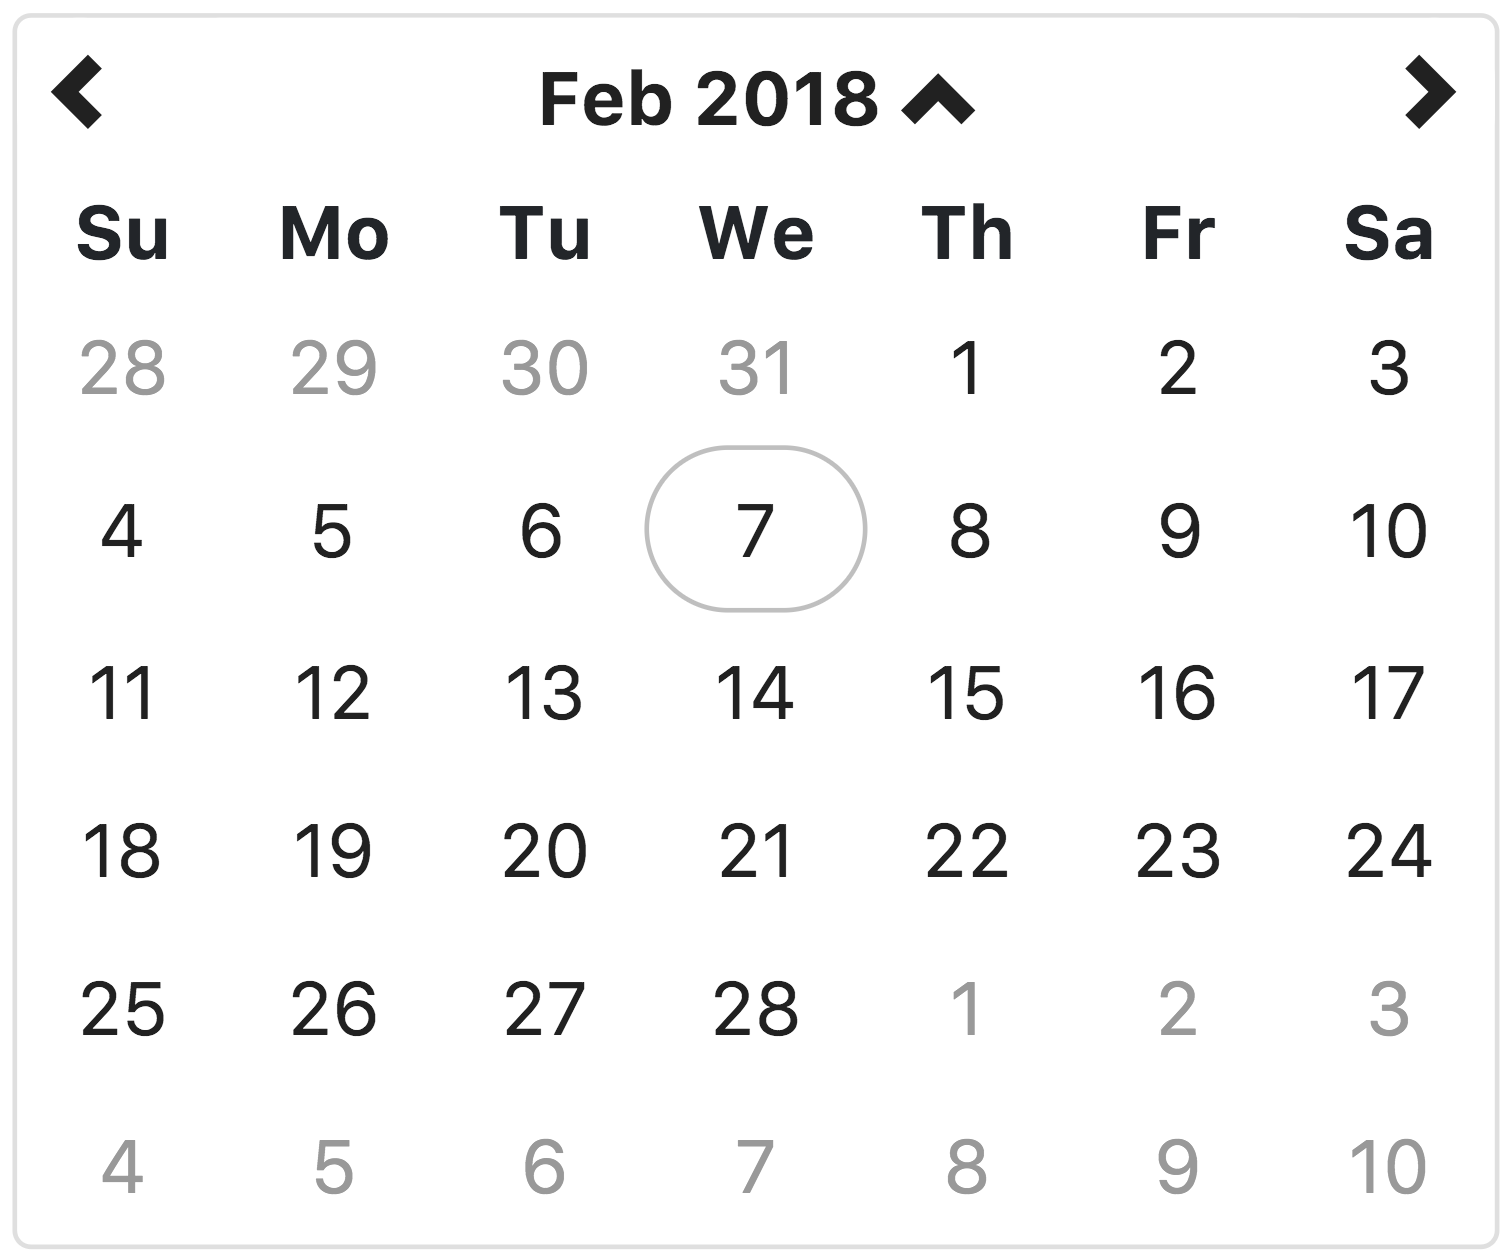 angular-bootstrap-datetimepicker - npm